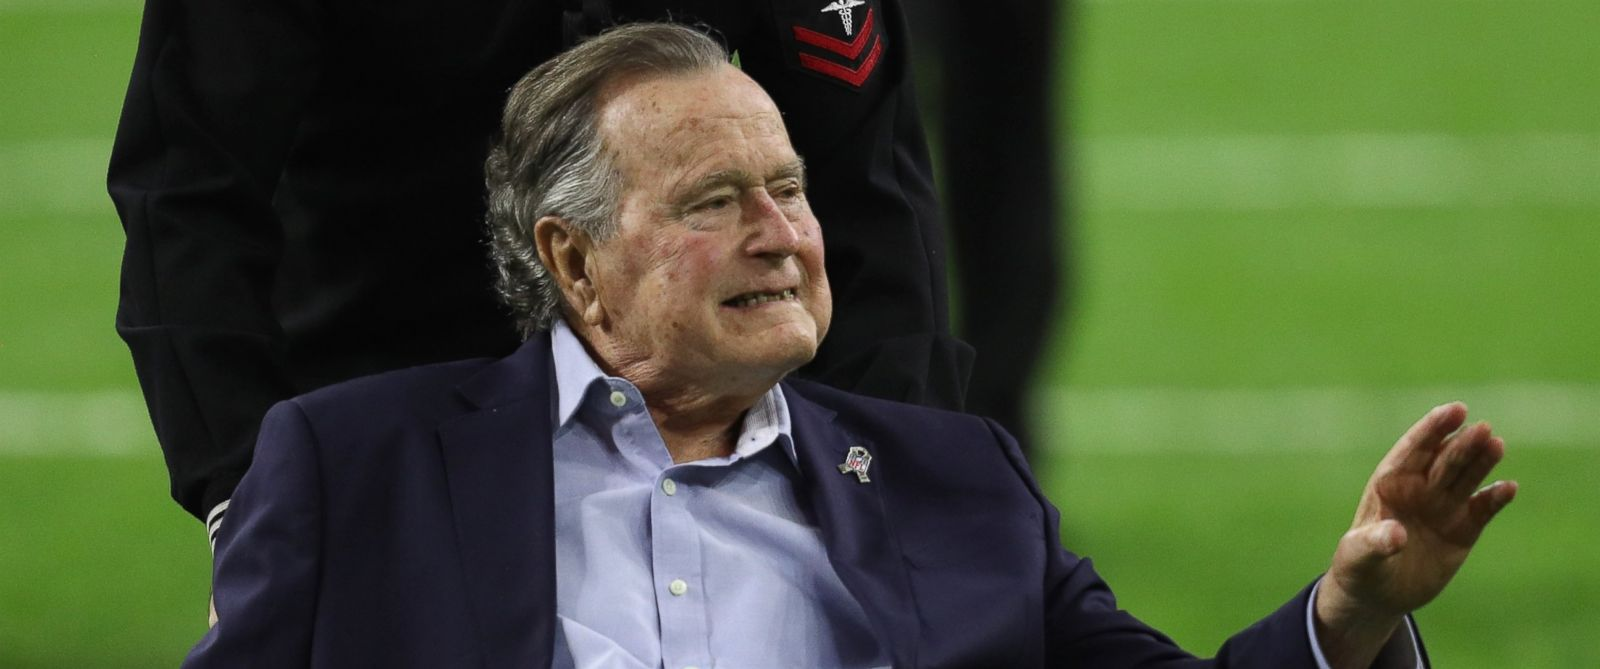 PHOTO: President George H.W. Bush arrives for the coin toss prior to Super Bowl 51 between the Atlanta Falcons and the New England Patriots, Feb. 5, 2017, in Houston, Texas.